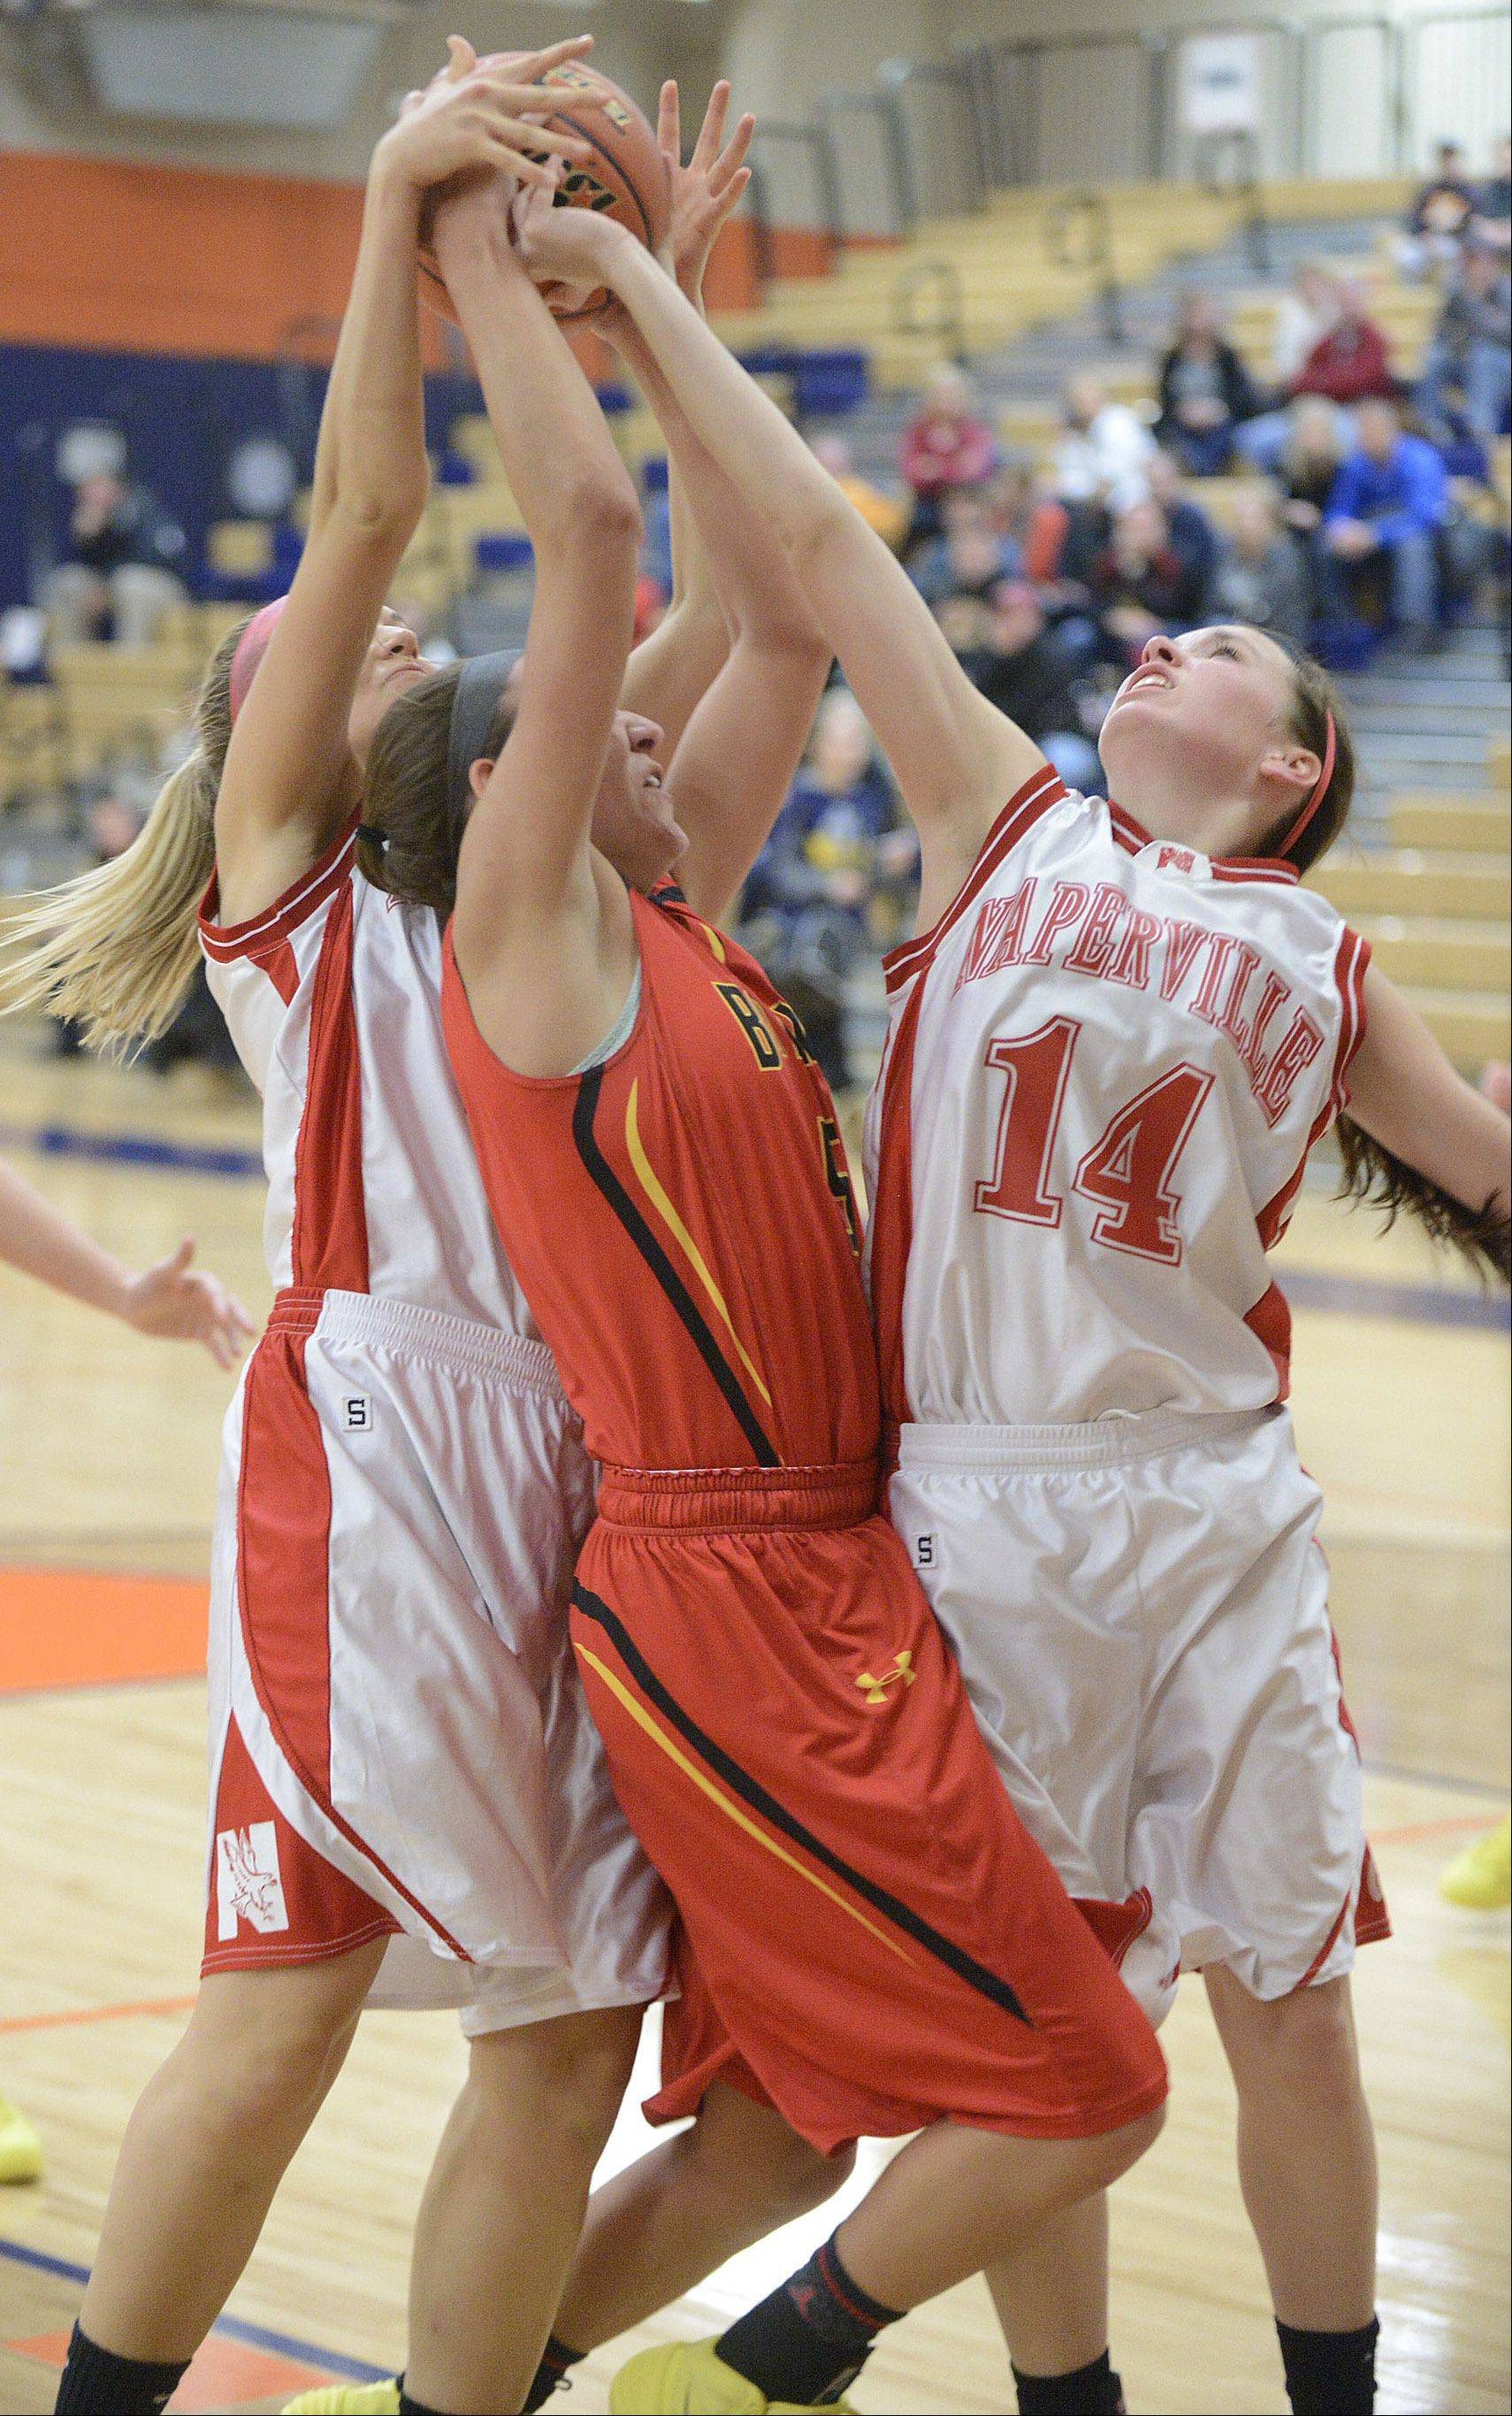 Batavia's Liza Fruendt is sandwiched by Naperville Central's Kotryna Staputyte and Emily Kraft while grabbing and fighting for a rebound in the second quarter on Saturday.